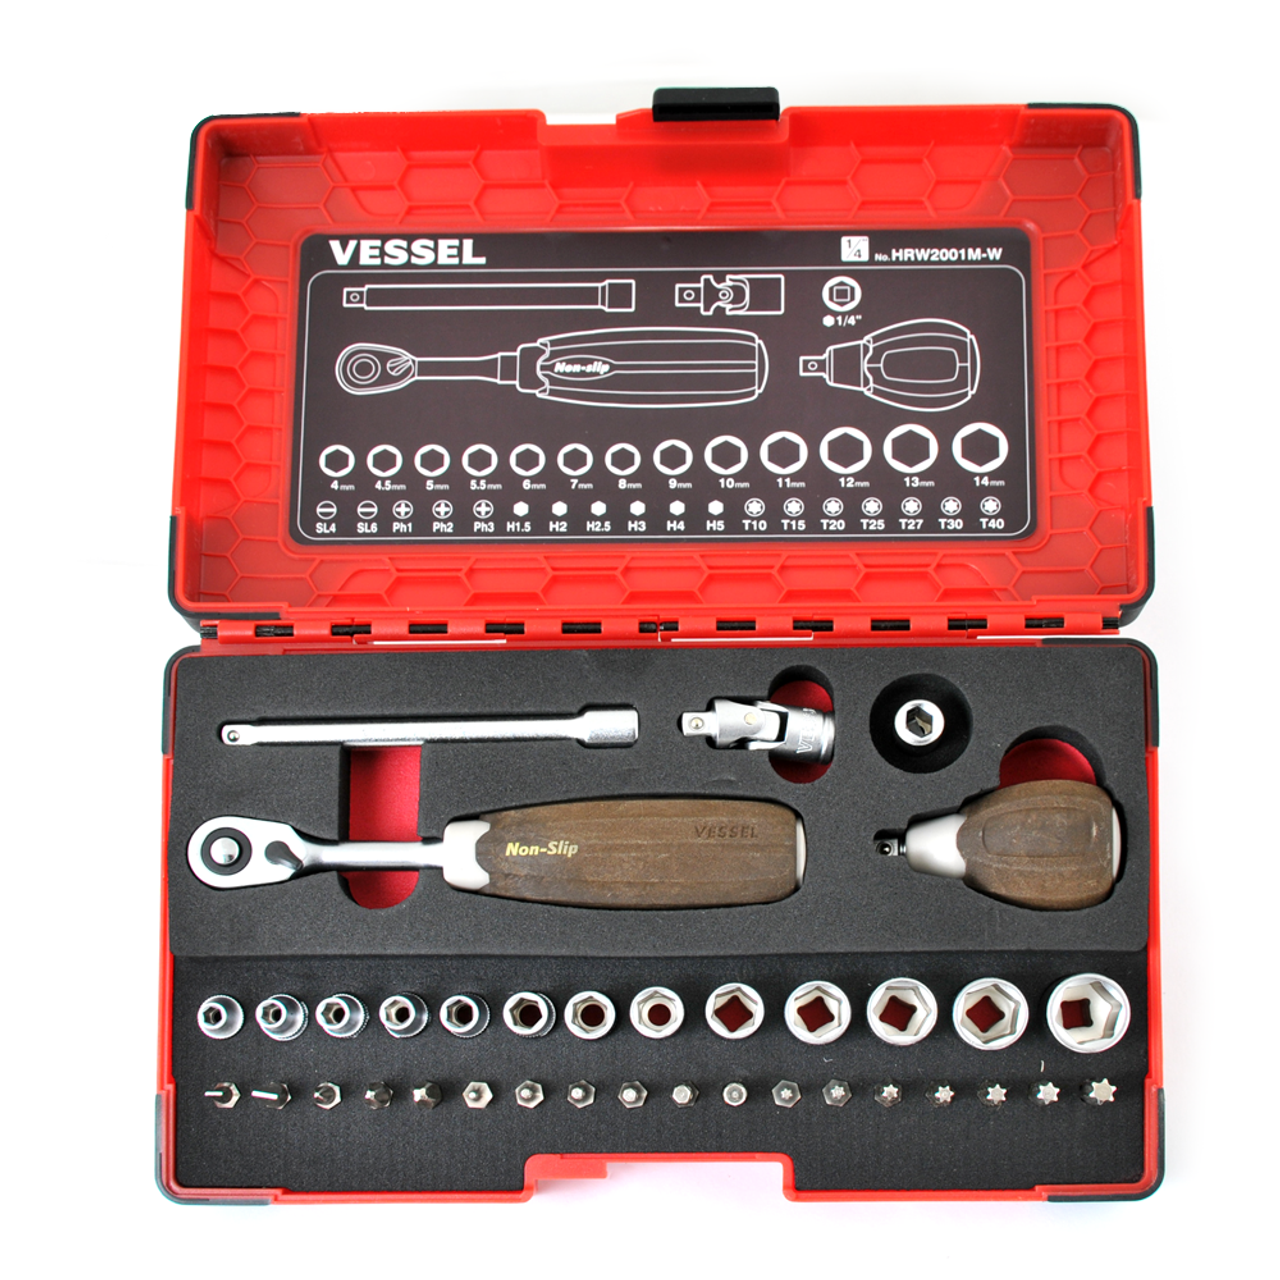 "VESSEL 36-PC 1/4"" Non-Slip Ratchet Driver Set (HRW2001M-W)"